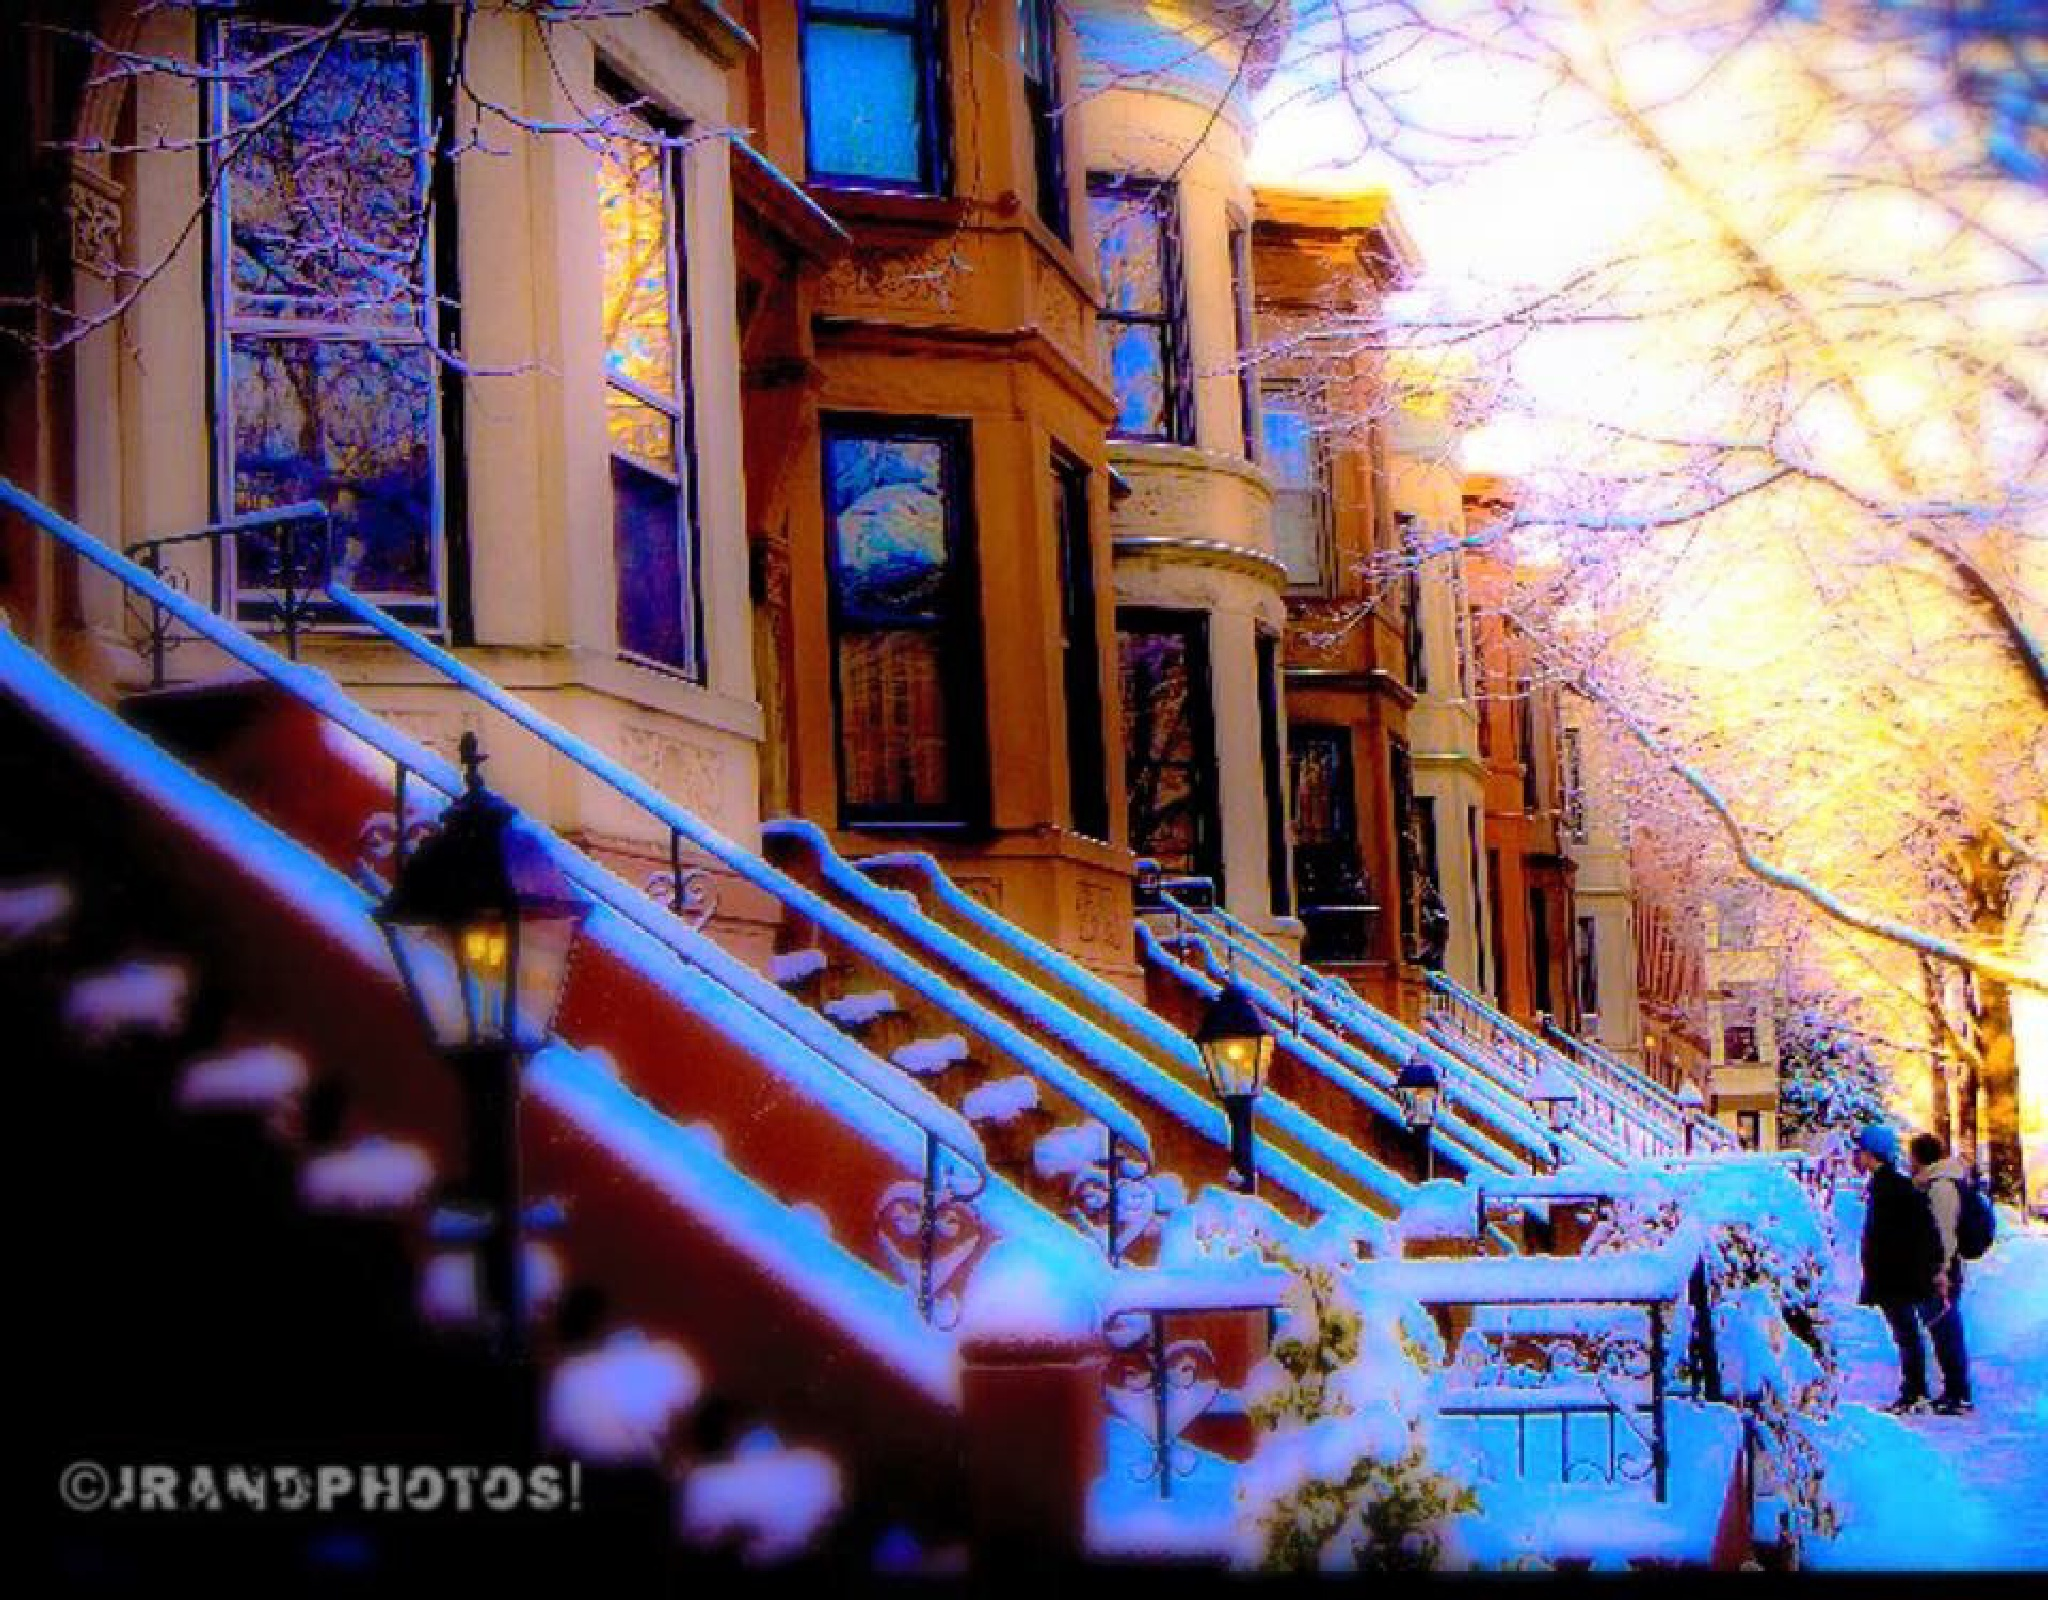 Winter time in Brooklyn NY by johnrand